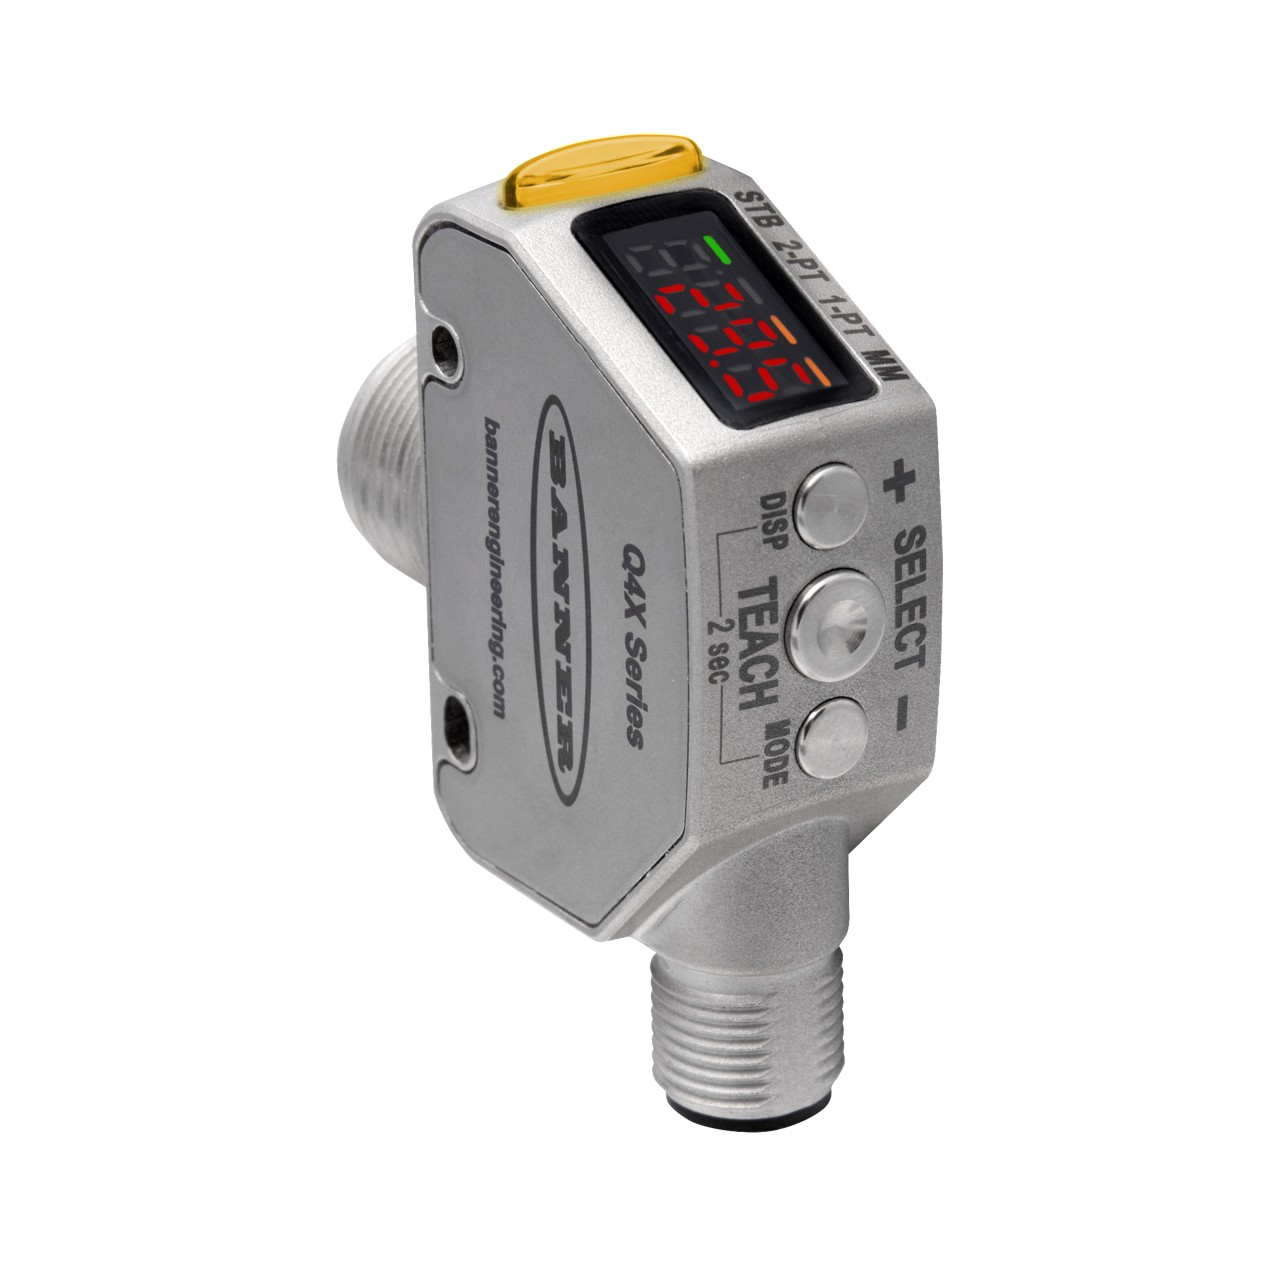 Q4X Series Laser Measurement Sensor